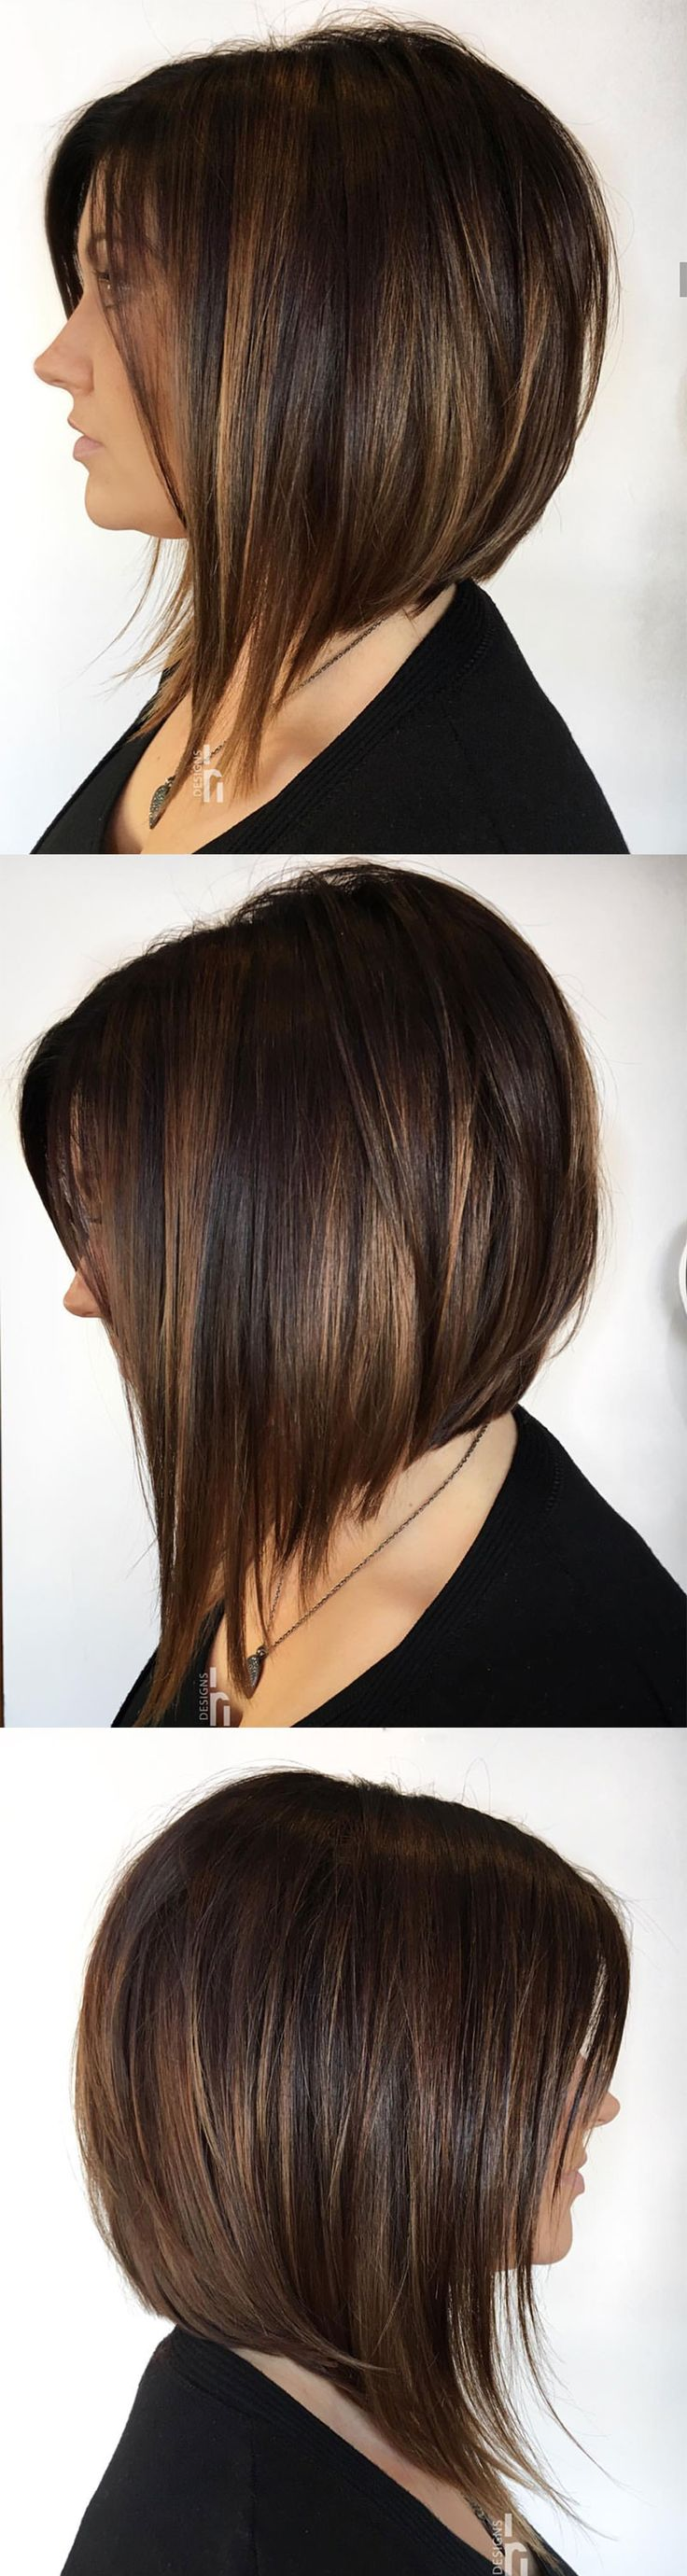 long angled/inverted bob for when pixie grows out  @headrushdesigns